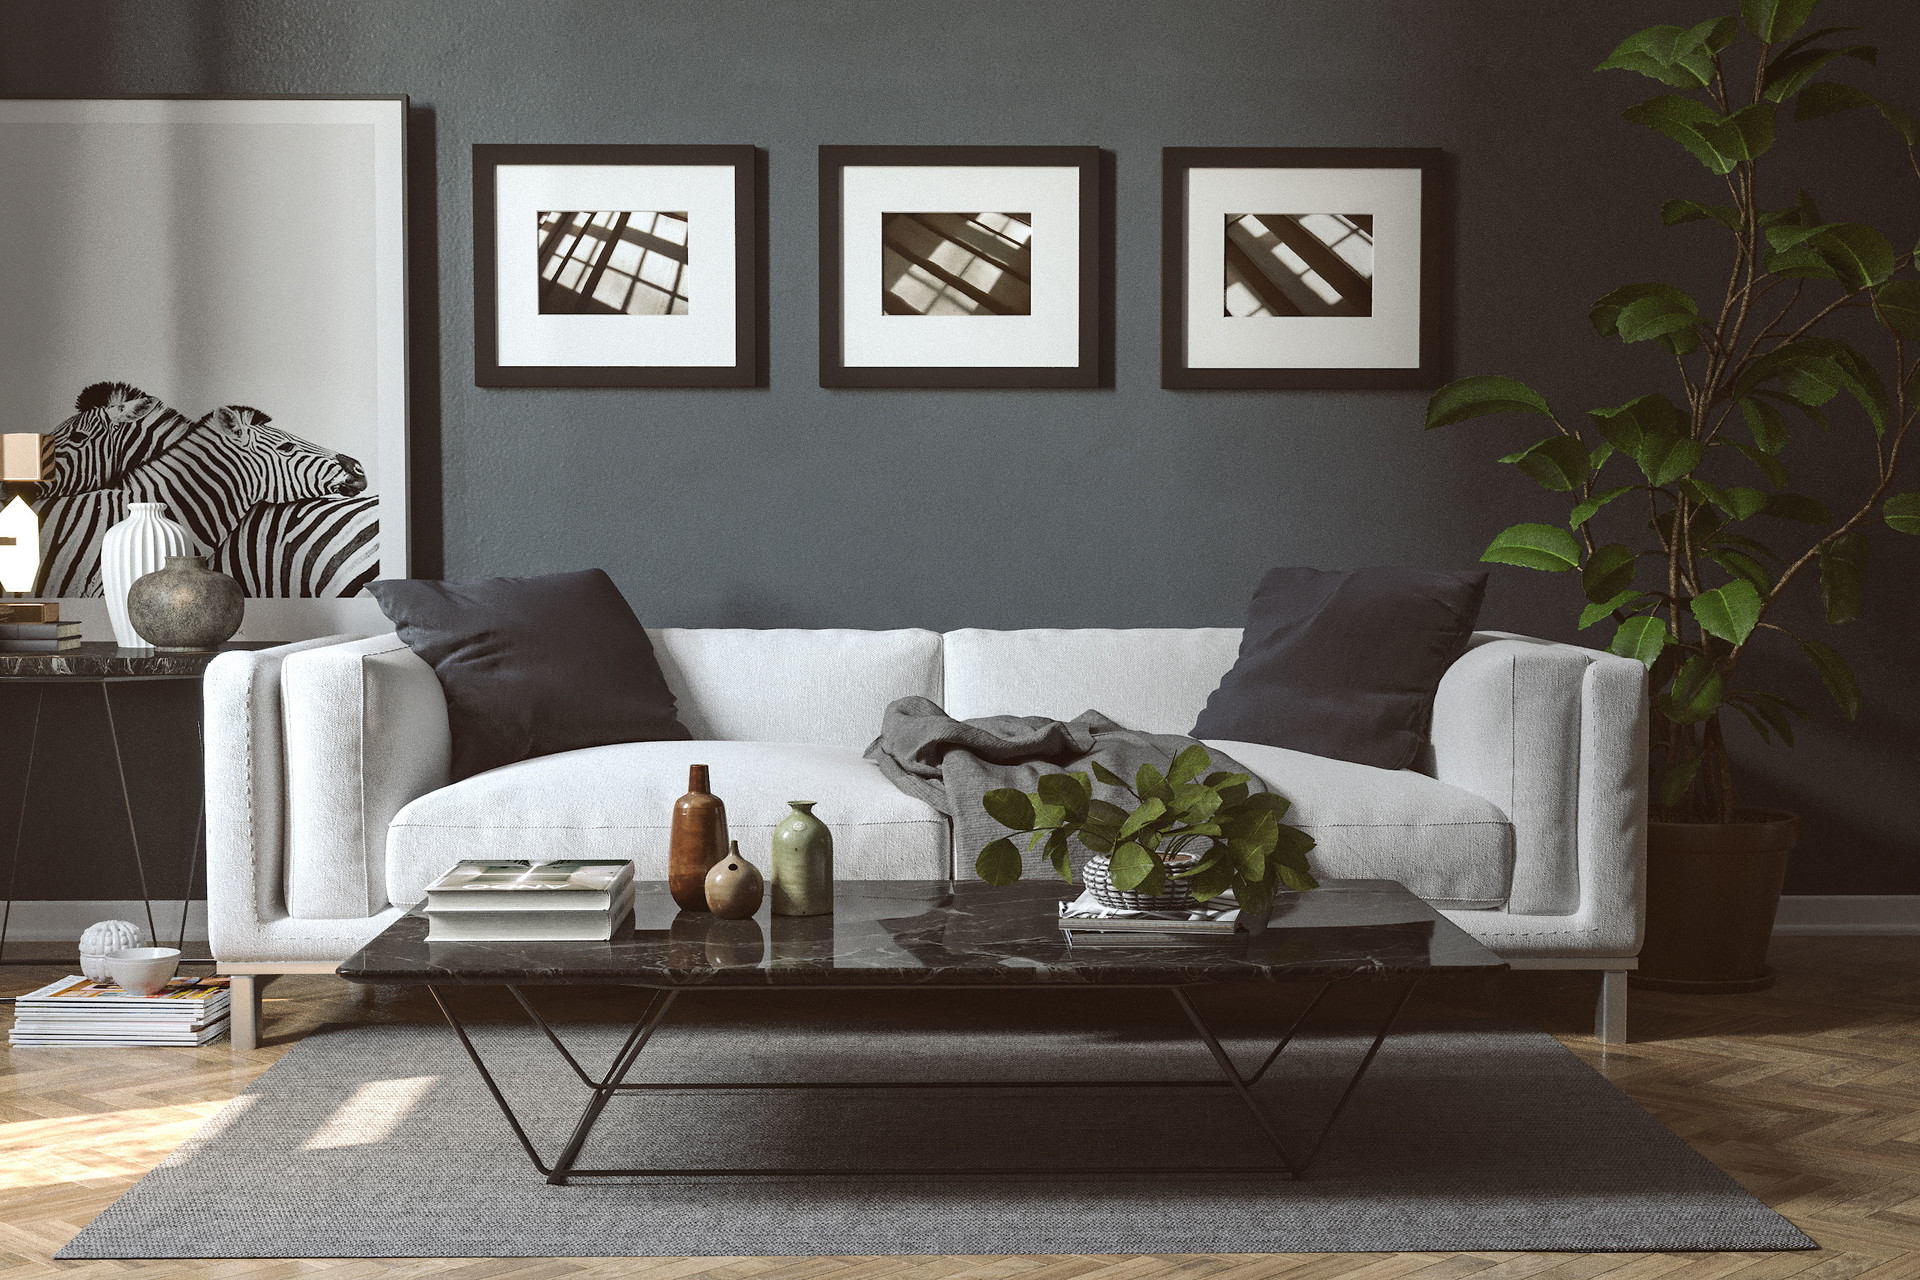 Personal Design Sofa Render With Corona